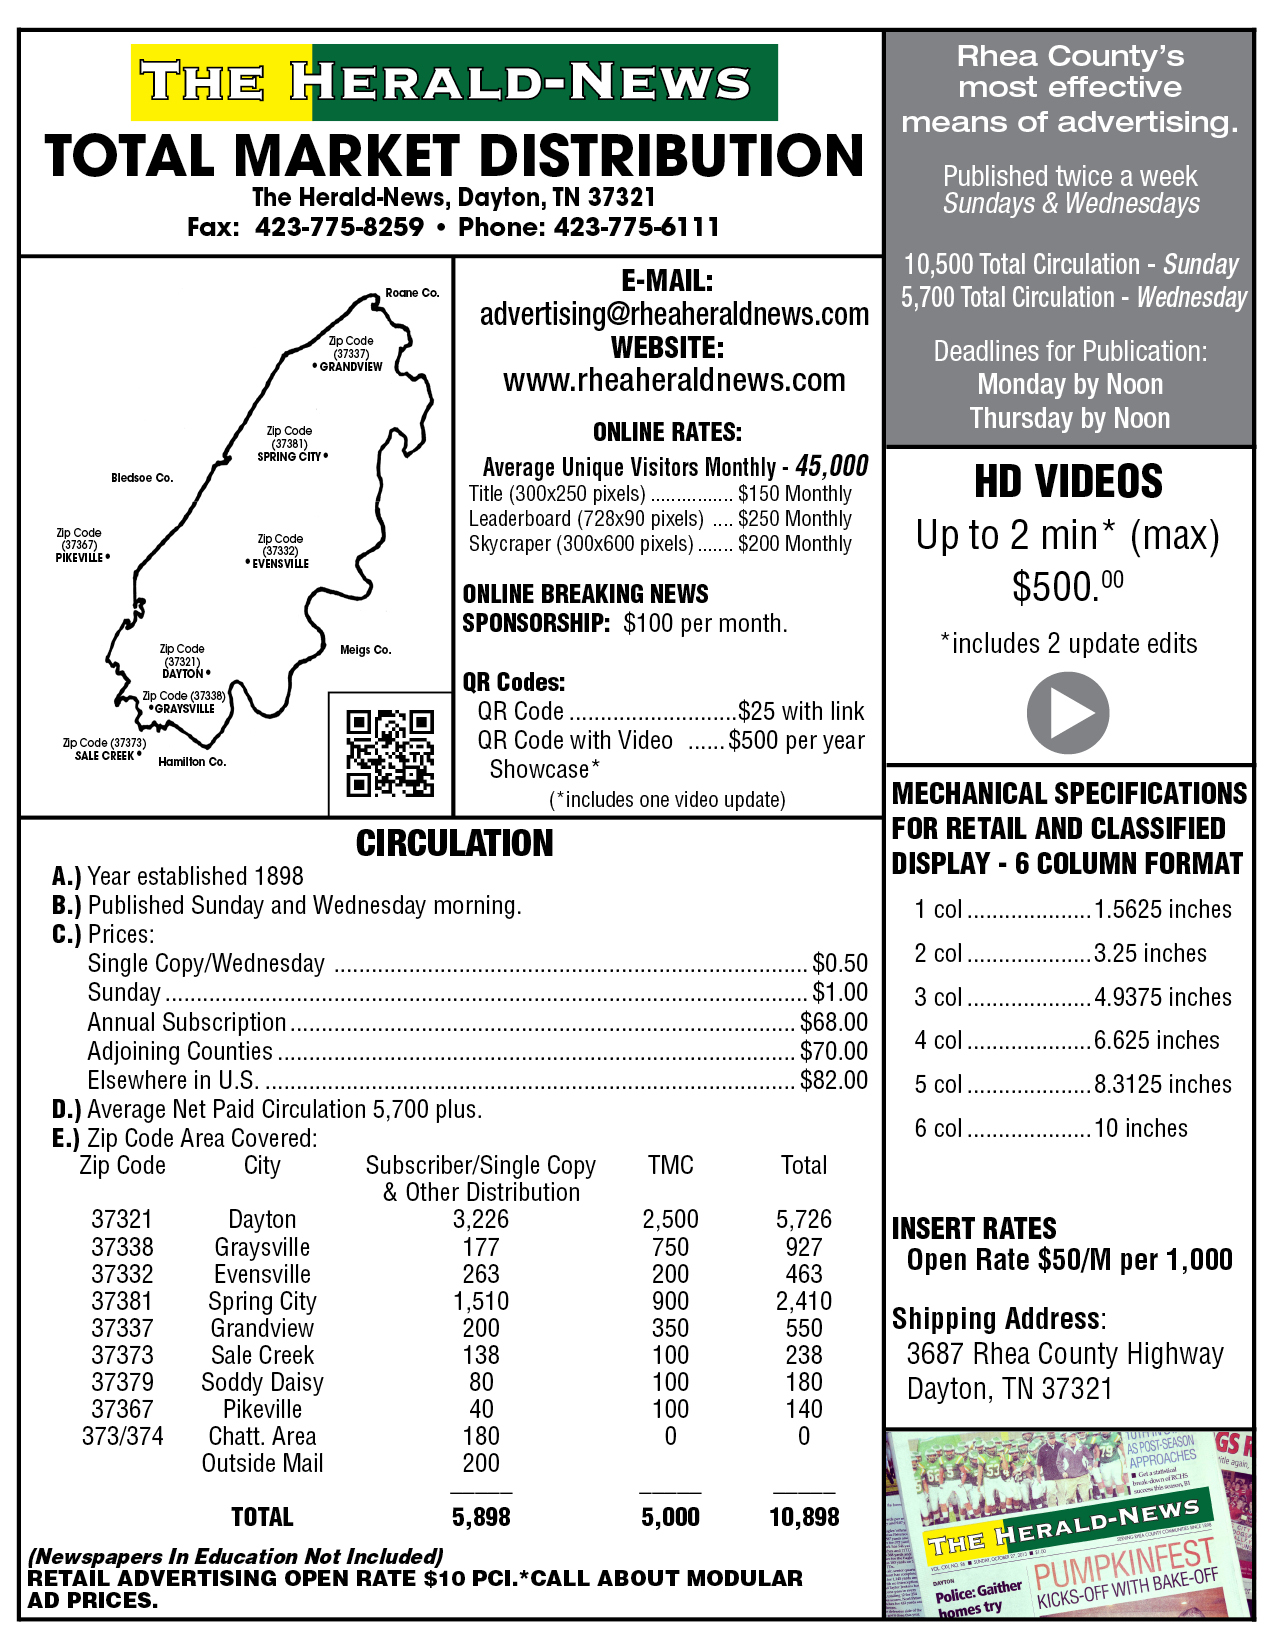 2015 Rate Card for The Herald-News